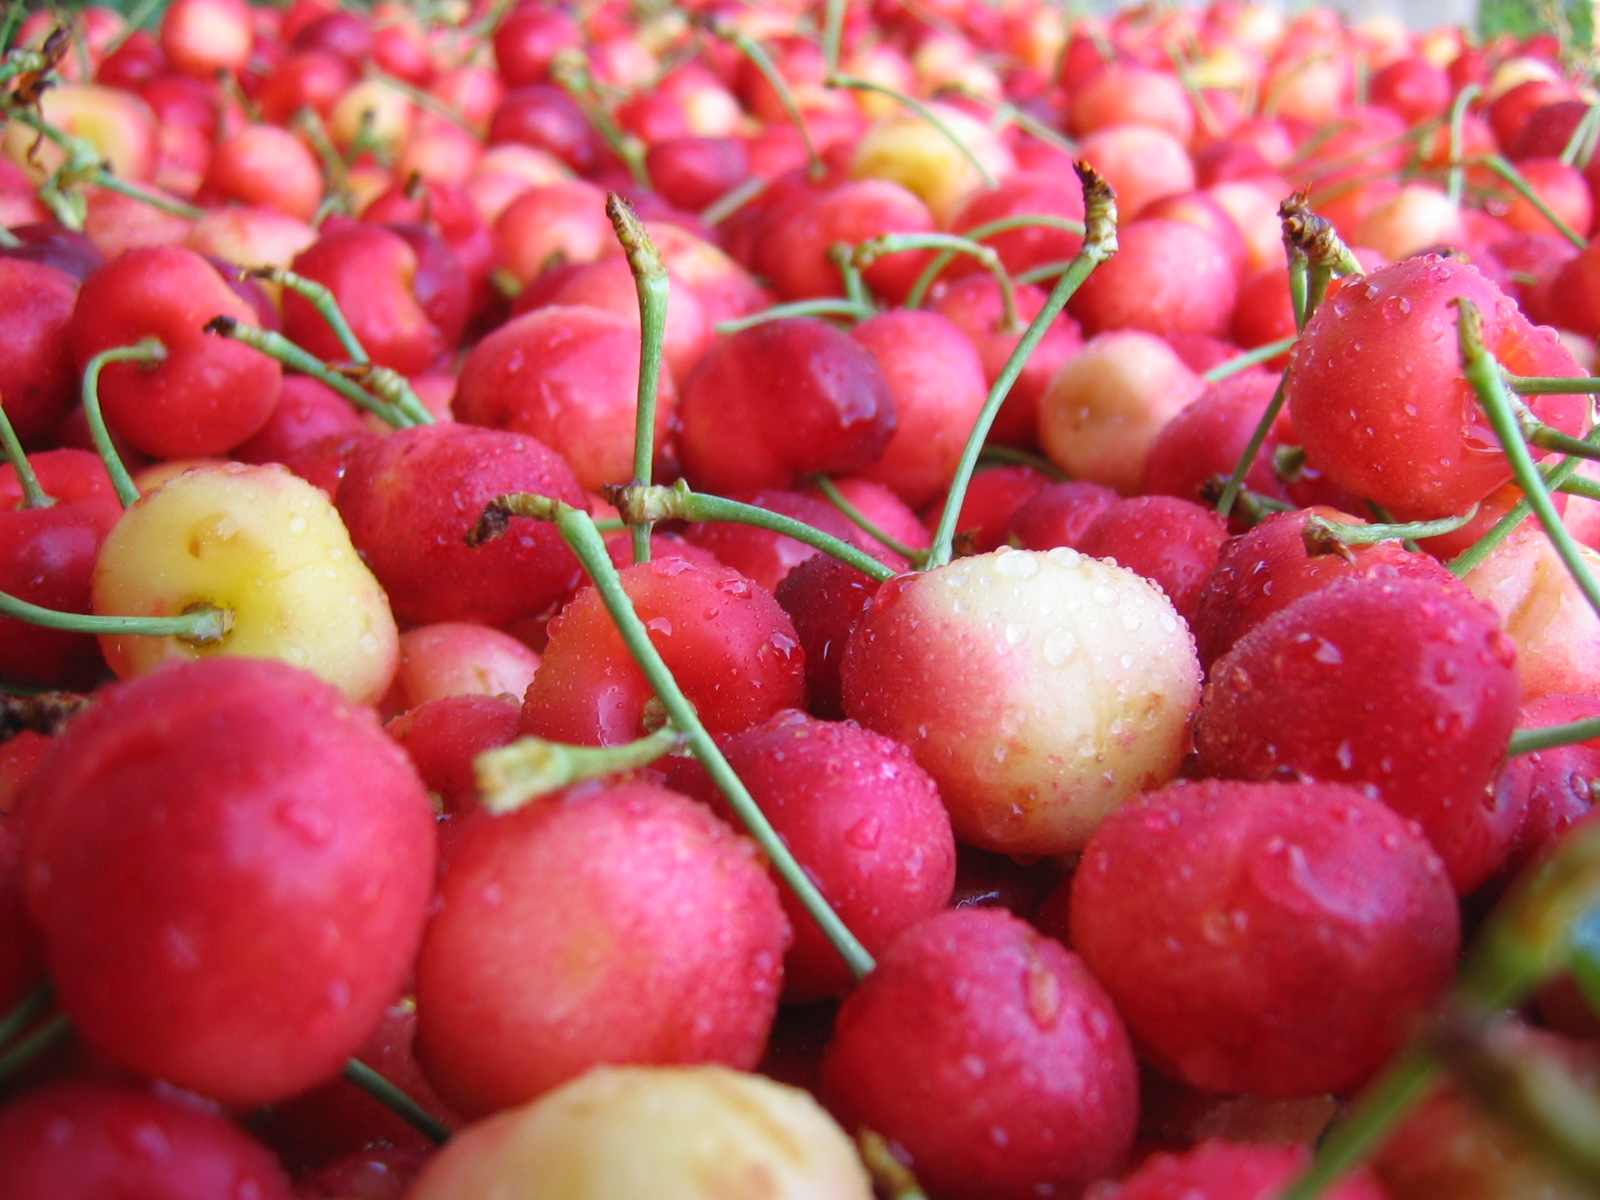 Cherries close up.jpg